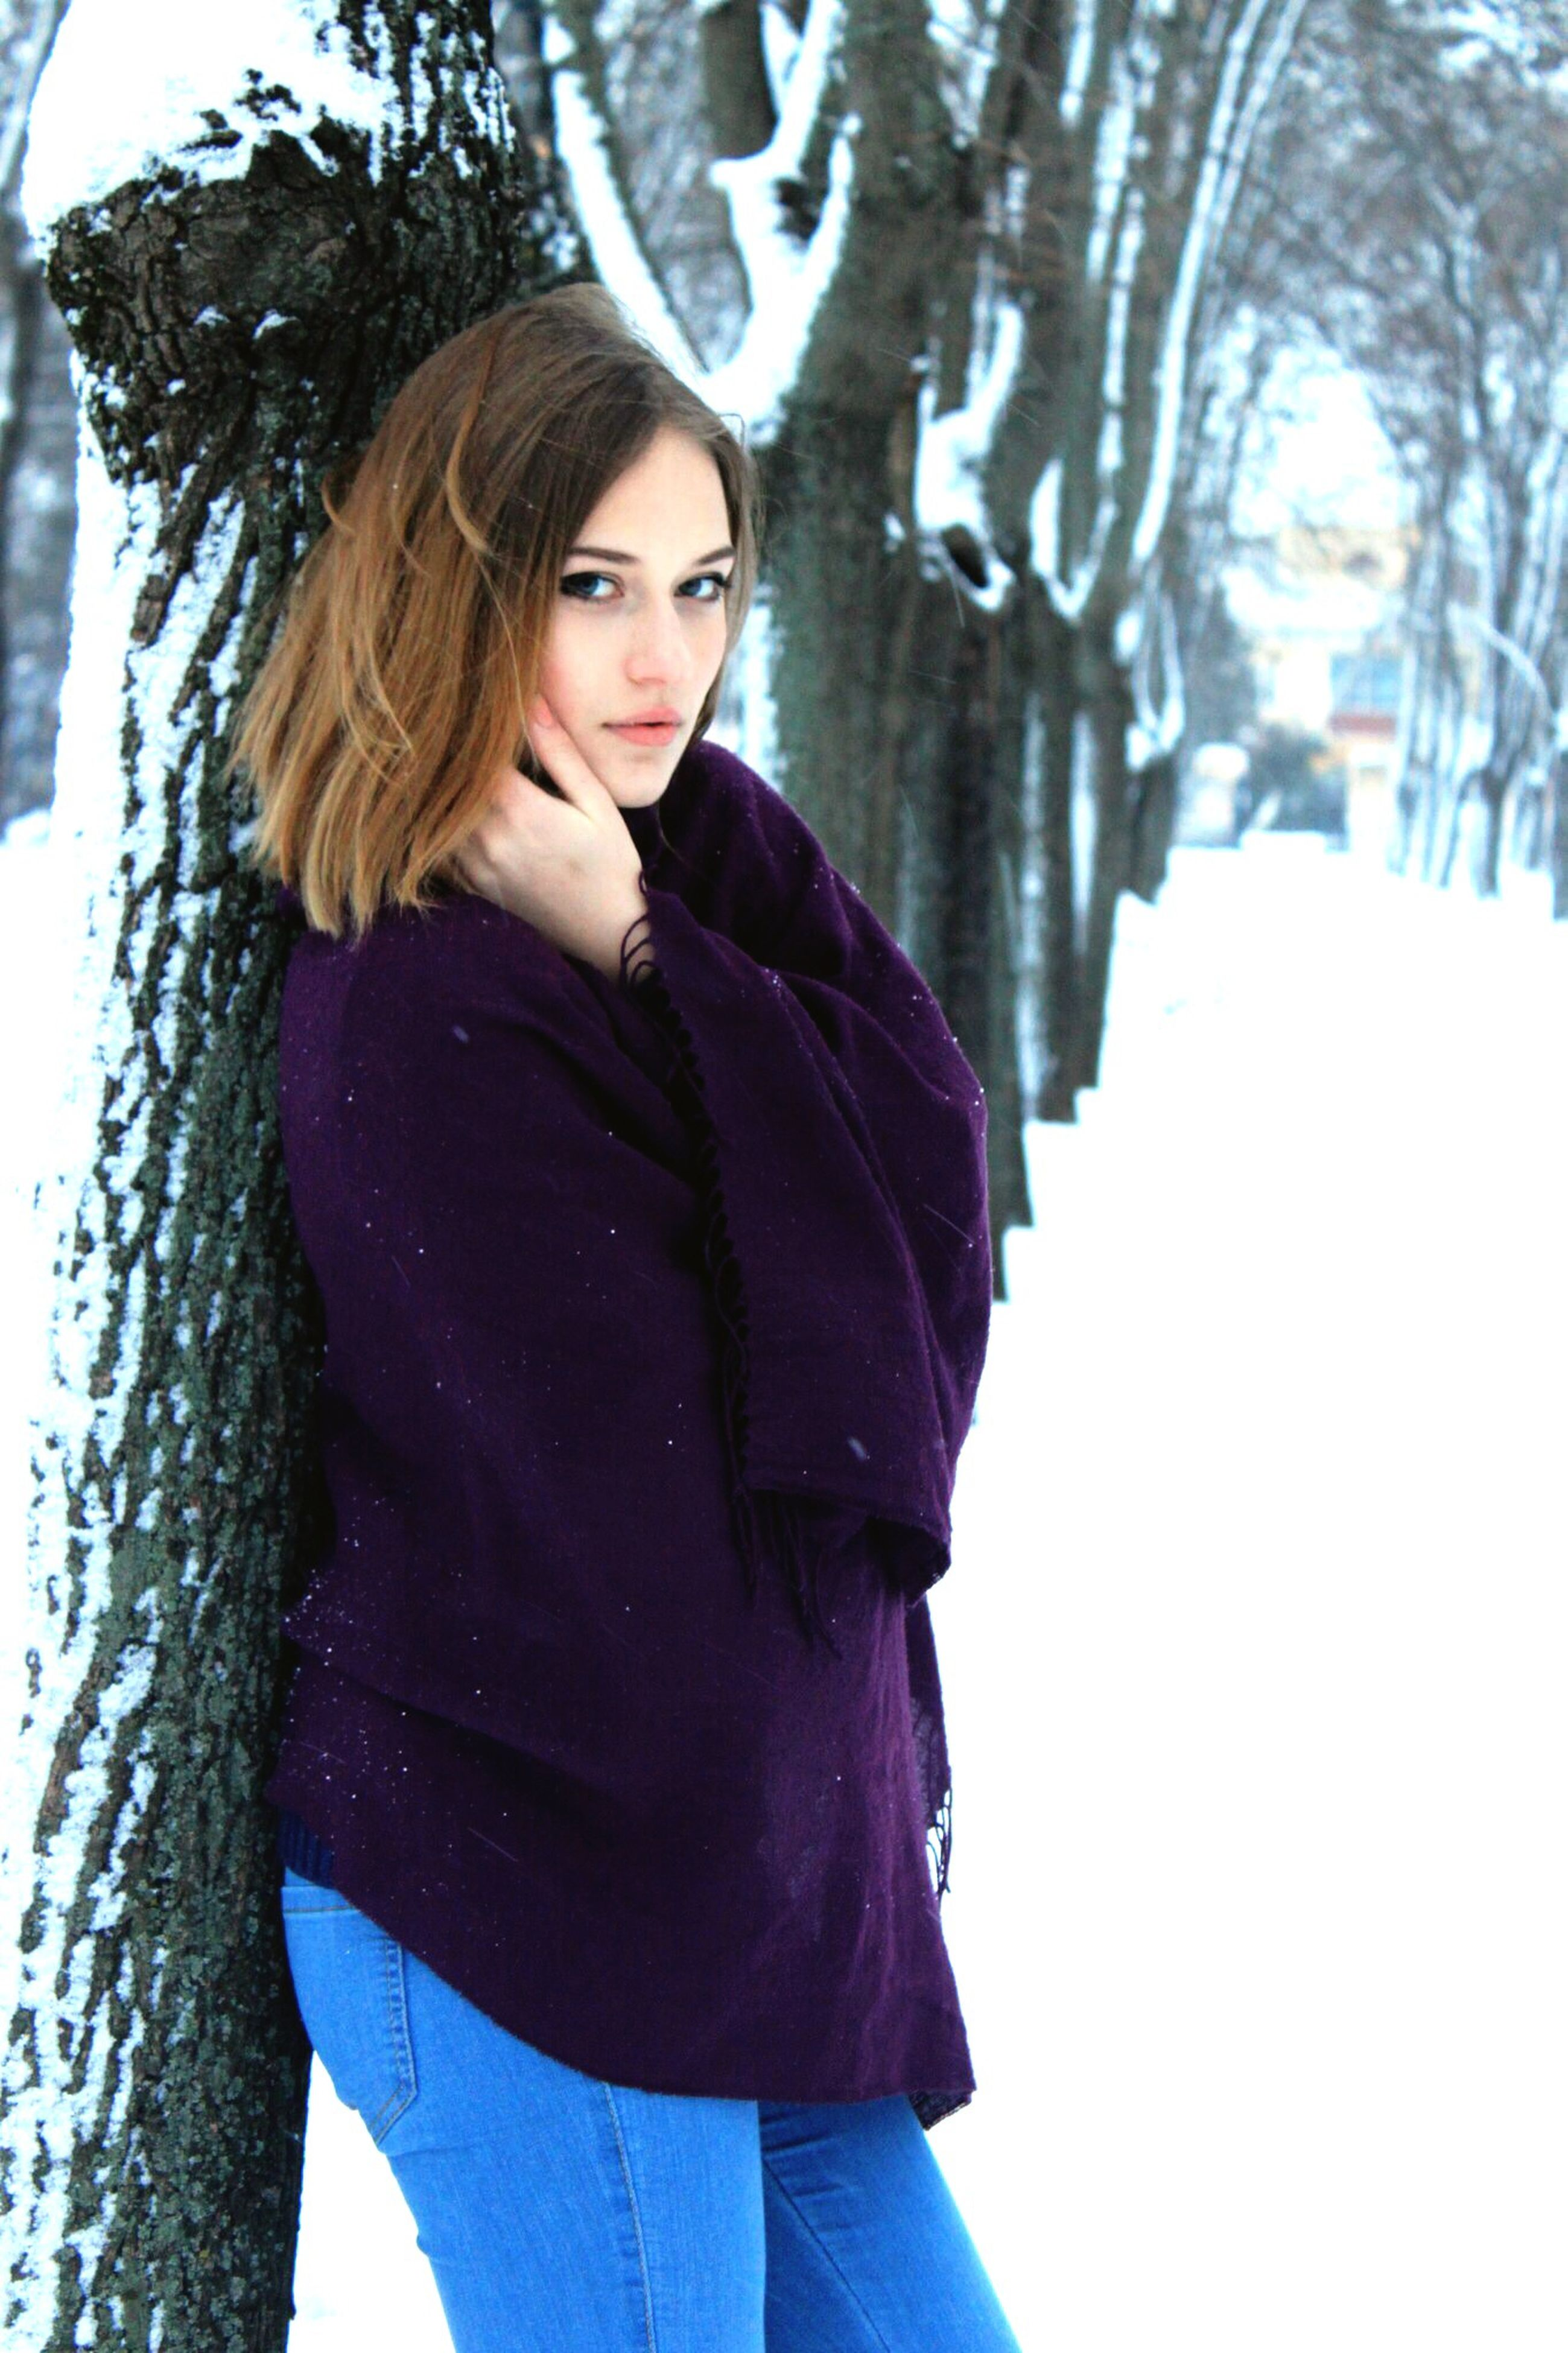 young adult, young women, person, portrait, looking at camera, lifestyles, front view, casual clothing, long hair, winter, three quarter length, standing, leisure activity, smiling, warm clothing, snow, cold temperature